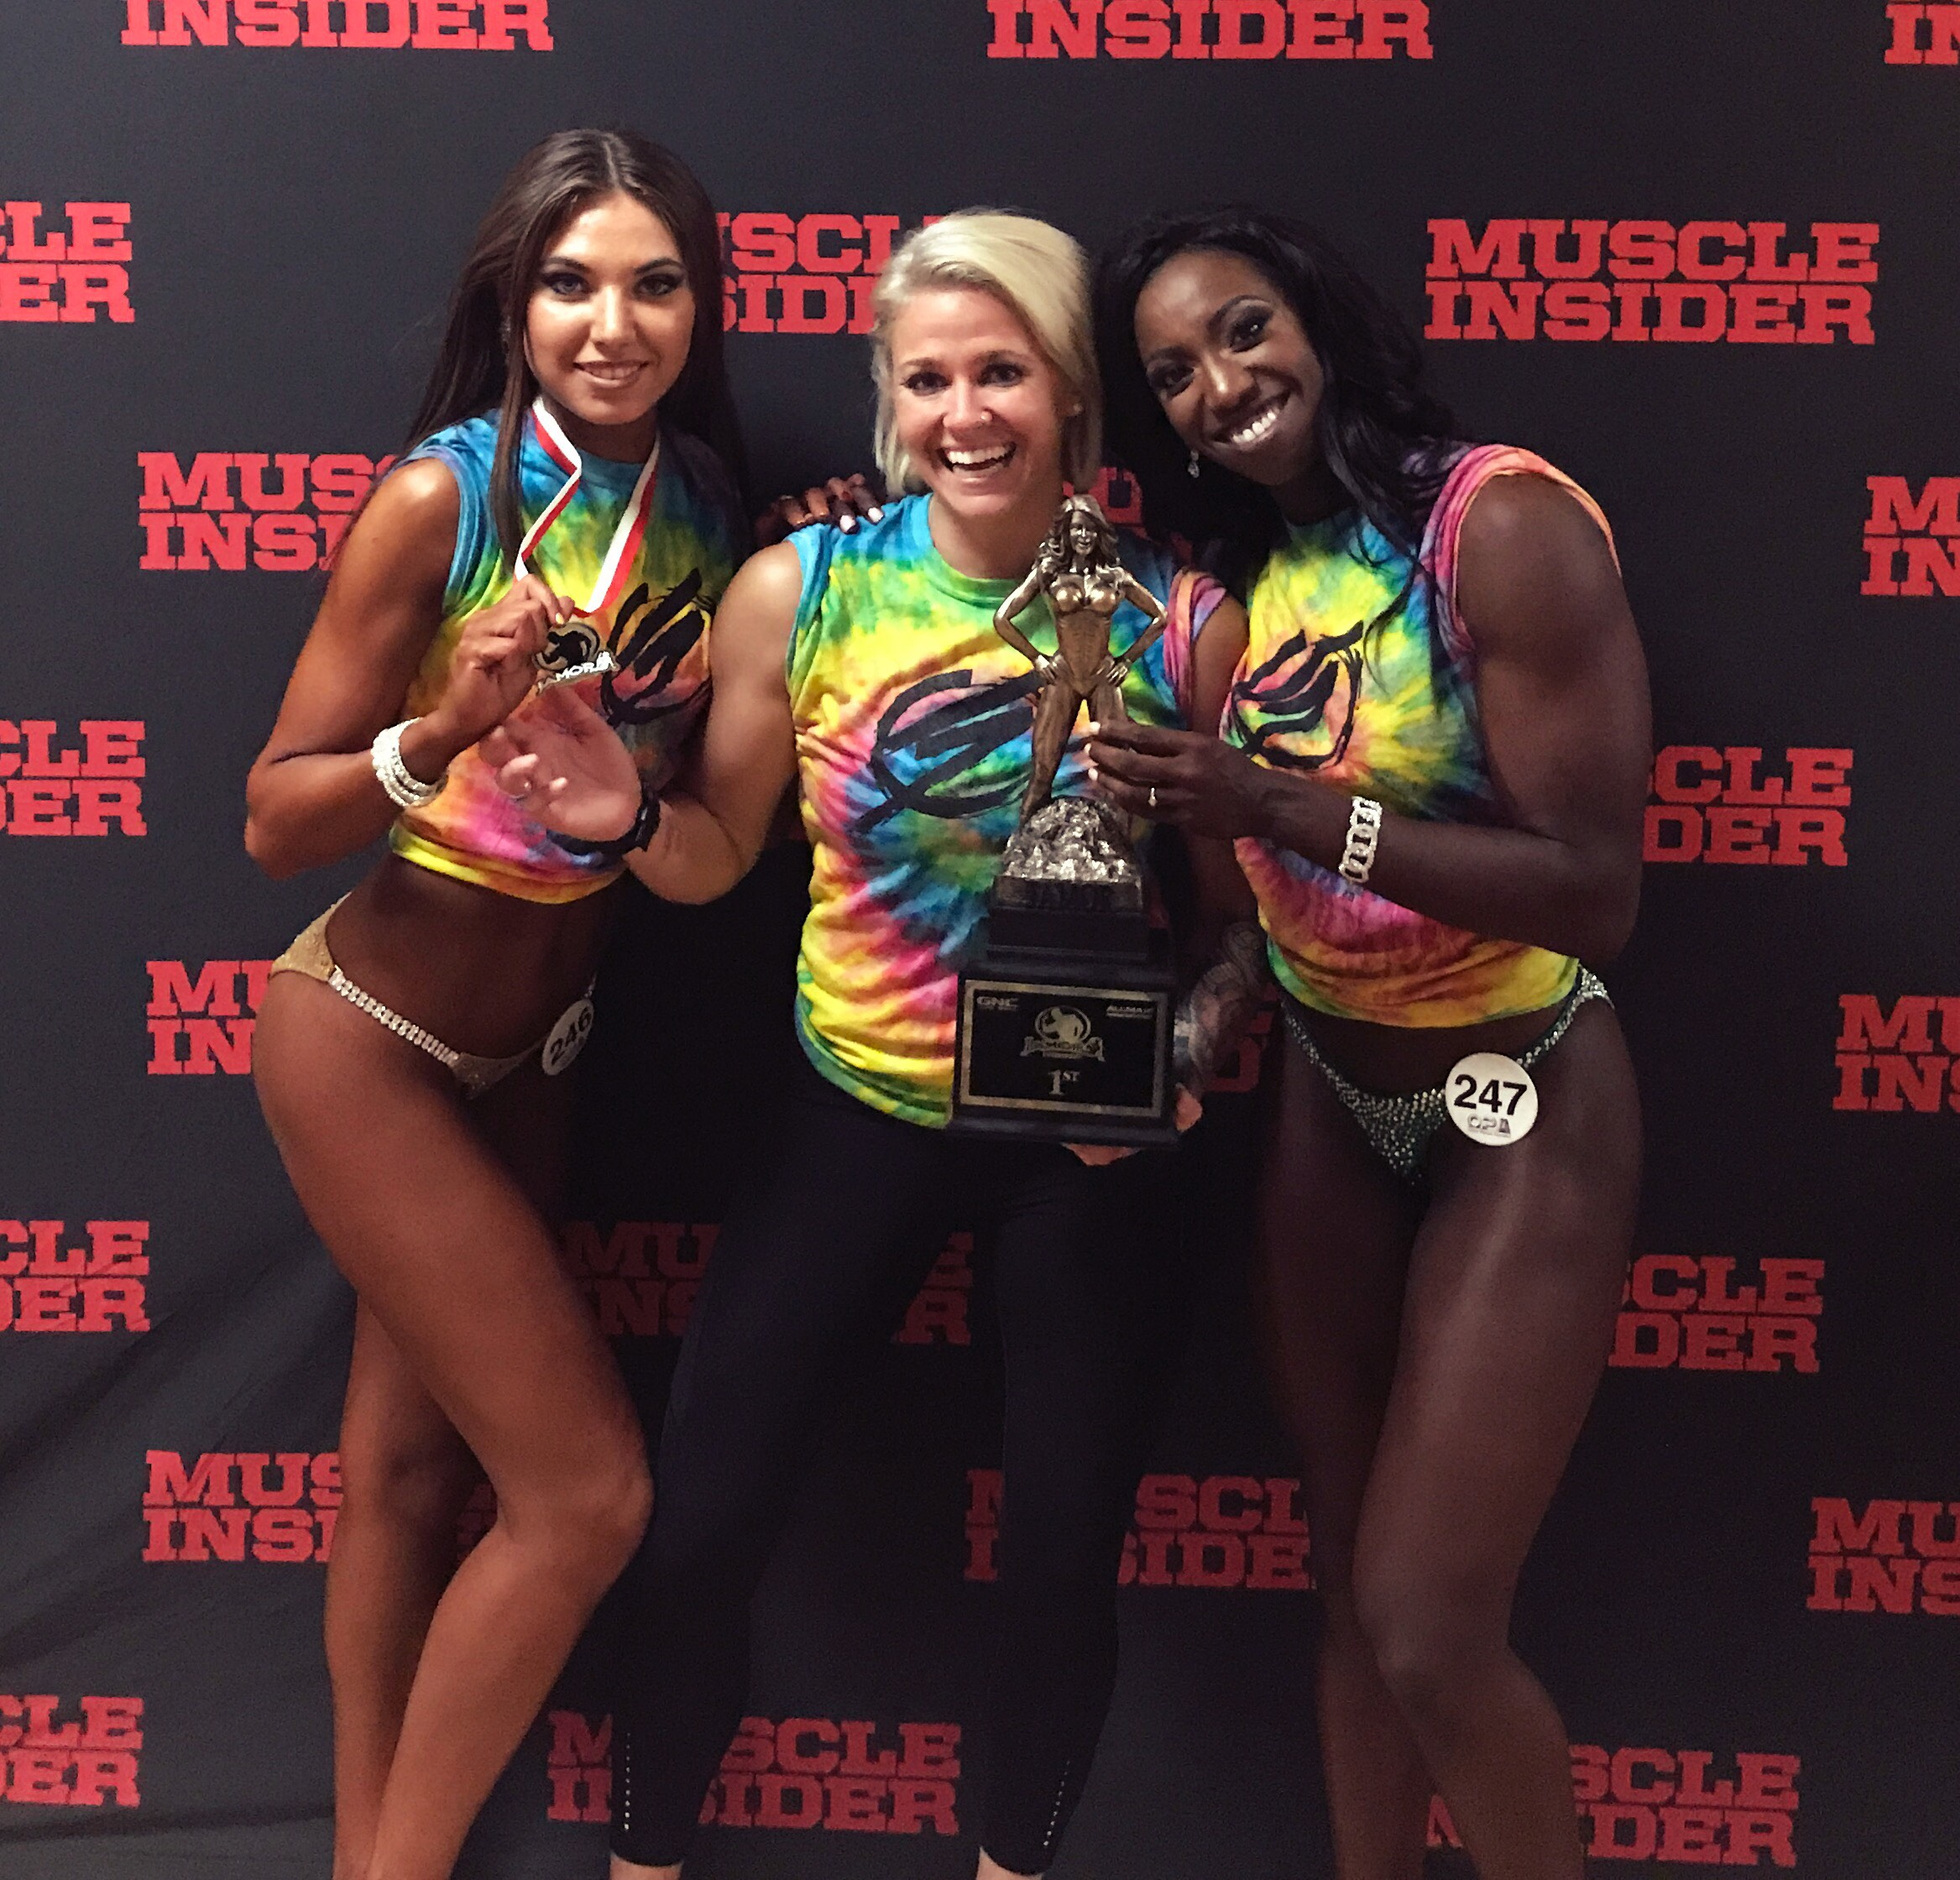 On the left, Alina took 5th in her Bikini class of 20. -On the right,Alishia who placed 1st in her figure class of 7.